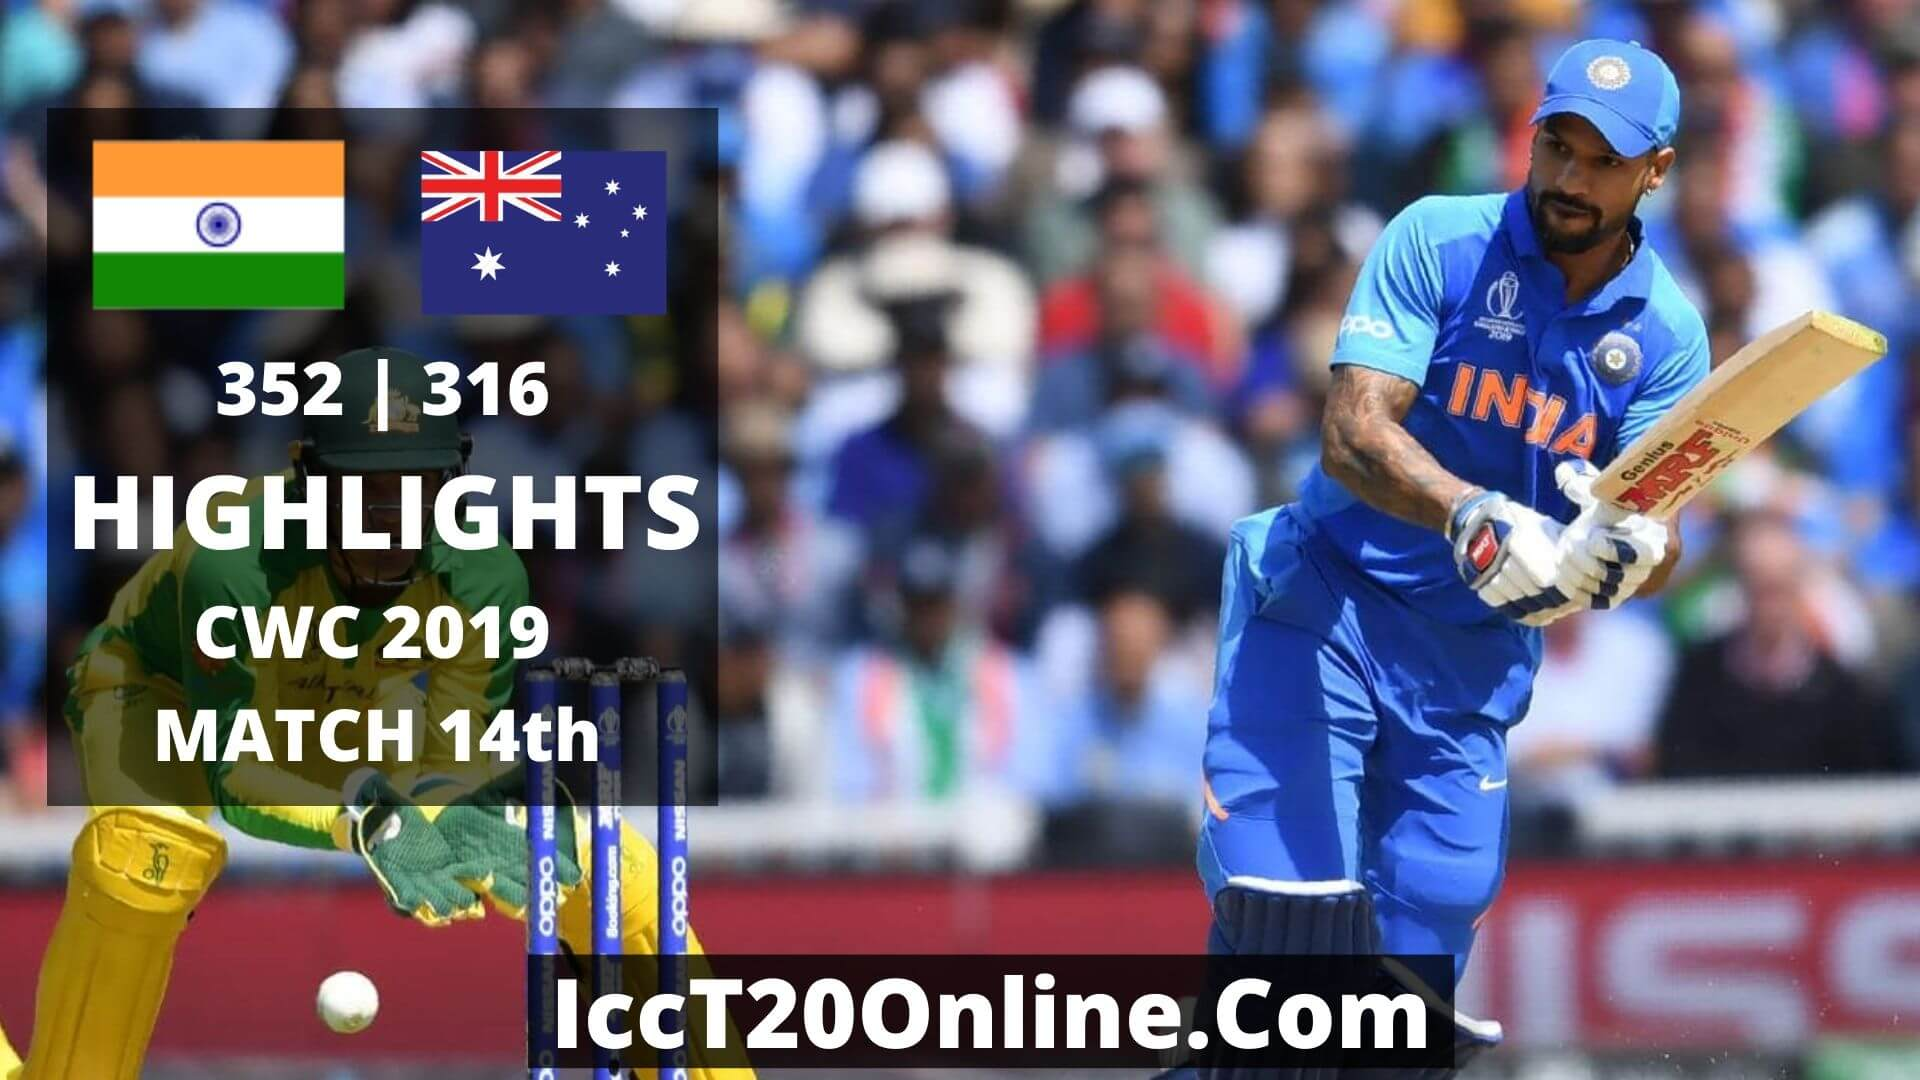 India vs Australia Highlights CWC 2019 Match 14th